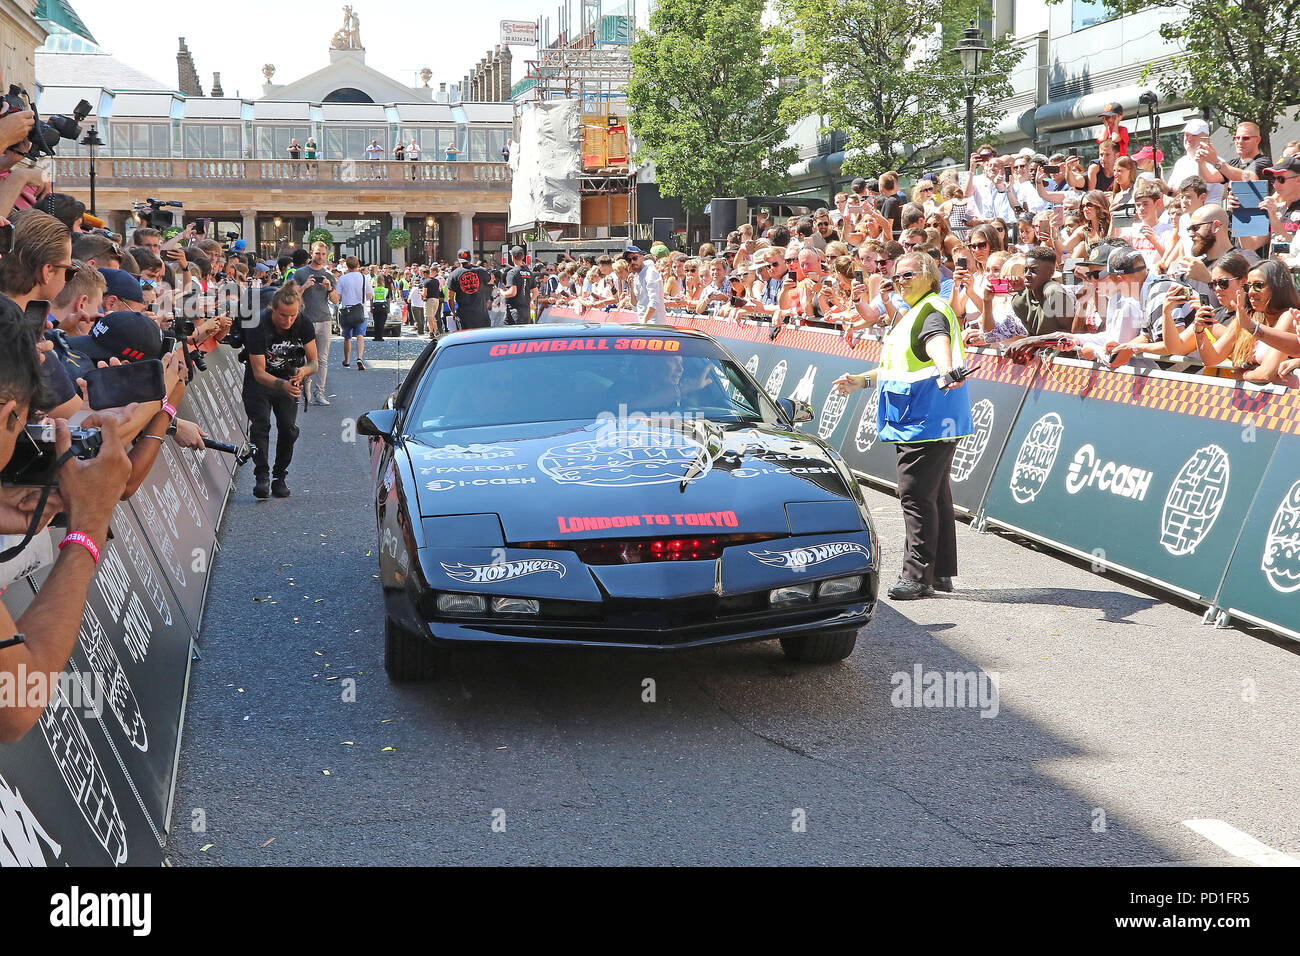 london, uk. 05th aug, 2018. knight rider kit car, gumball 3000